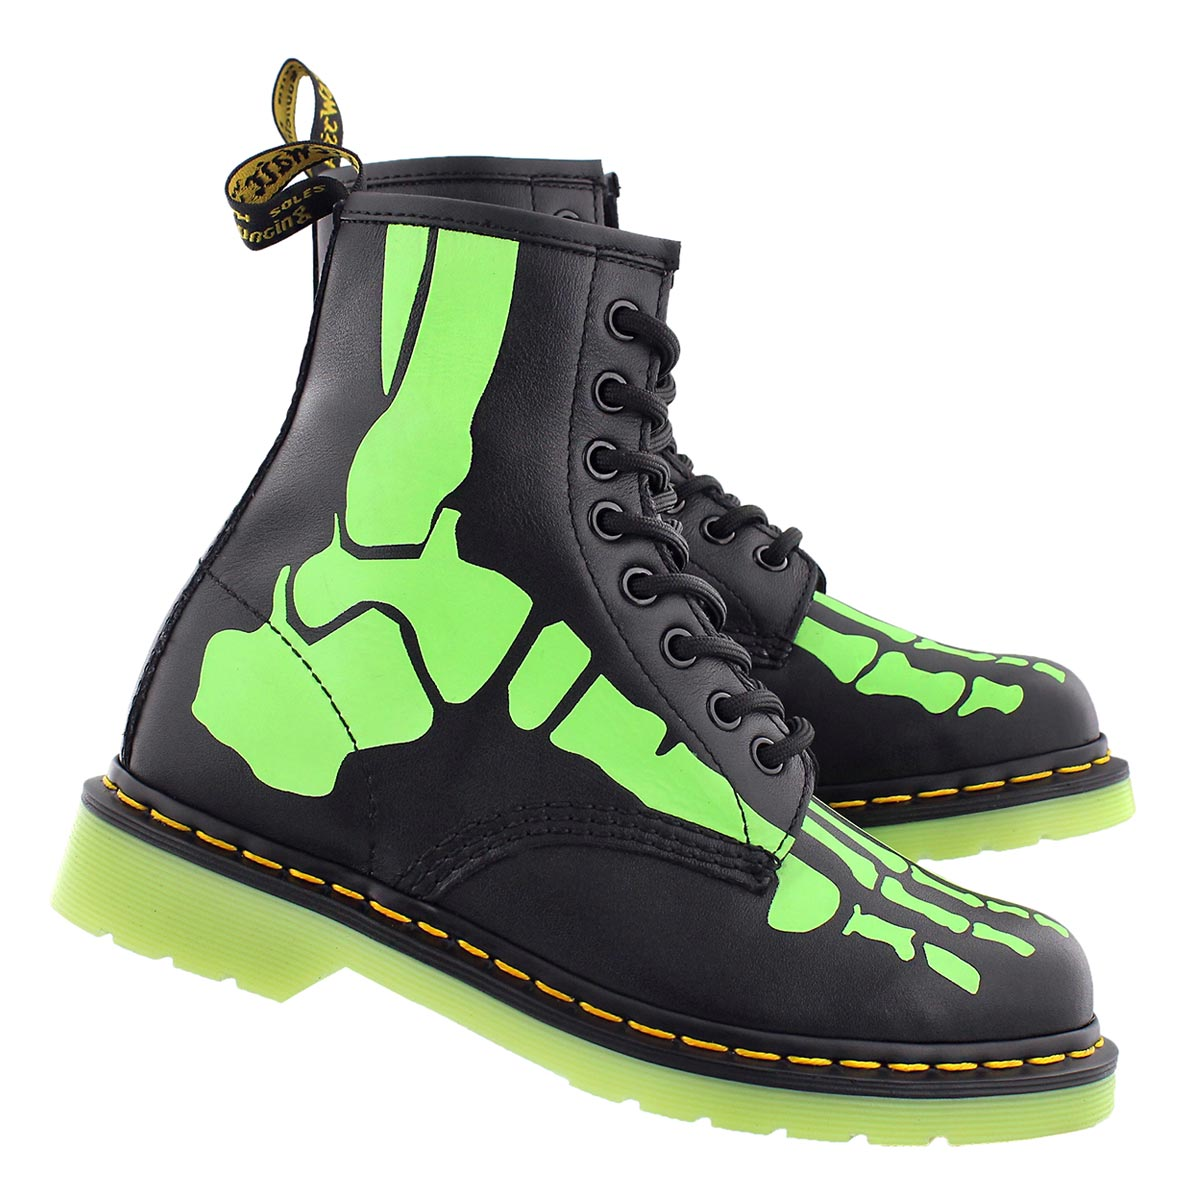 Lds Skelly blk/glow 8 eye boot